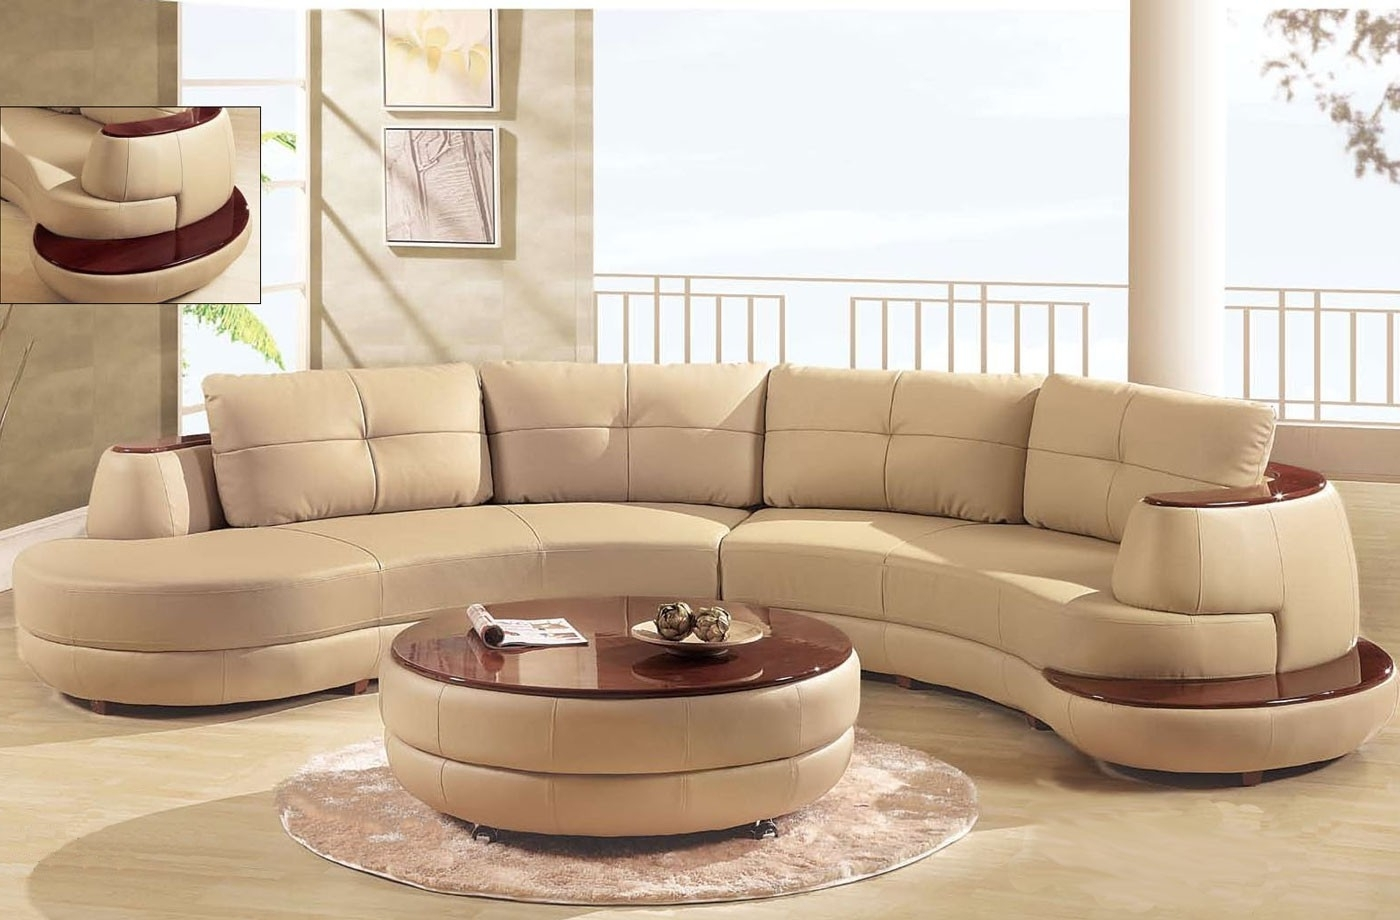 Best And Newest Furniture Living Room Curved Red Top Grain Leather Sectional Sofa Inside Circular Sectional Sofas (View 5 of 15)